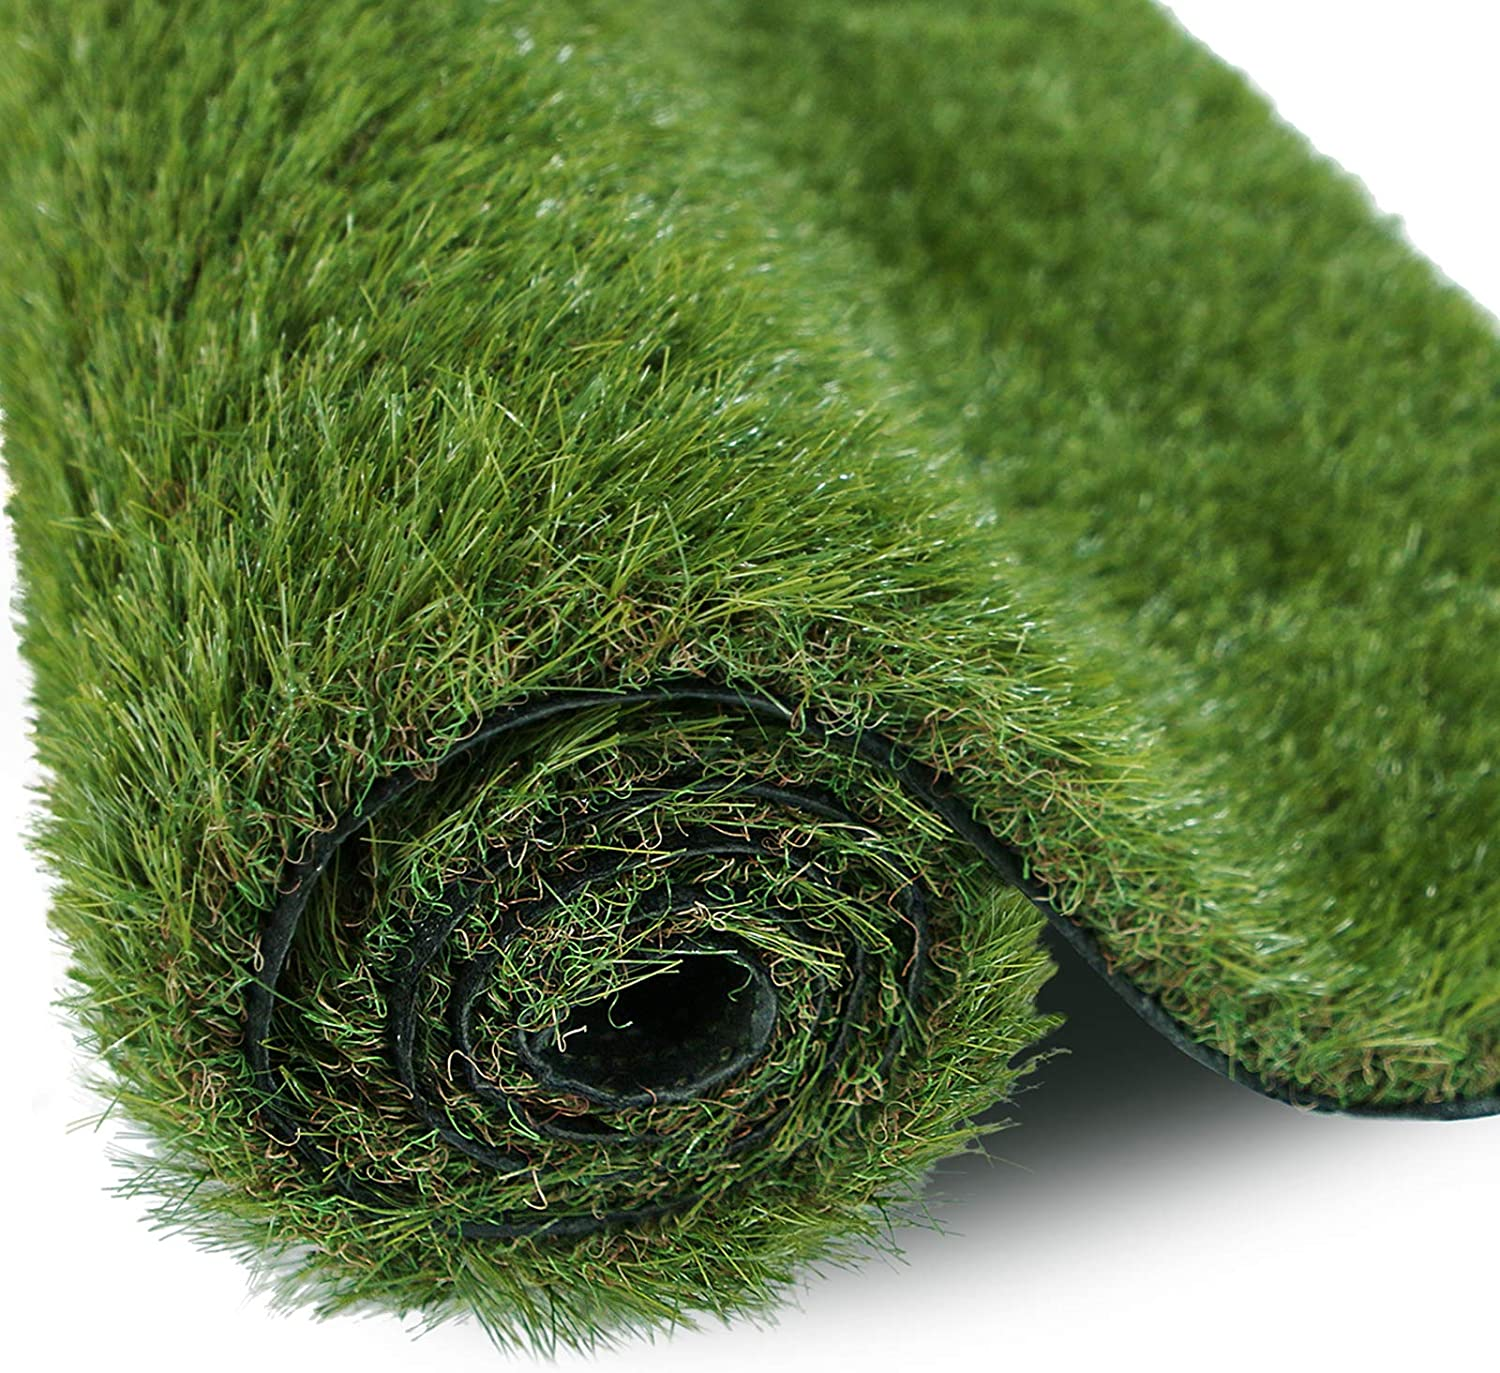 XLX TURF Premium Thick Artificial Grass Rug 5ft x 8ft for Indoor/Outdoor, 5 Tone Realistic Synthetic Fake Grass Pet Turf Mat Carpet Garden Lawn Landscape